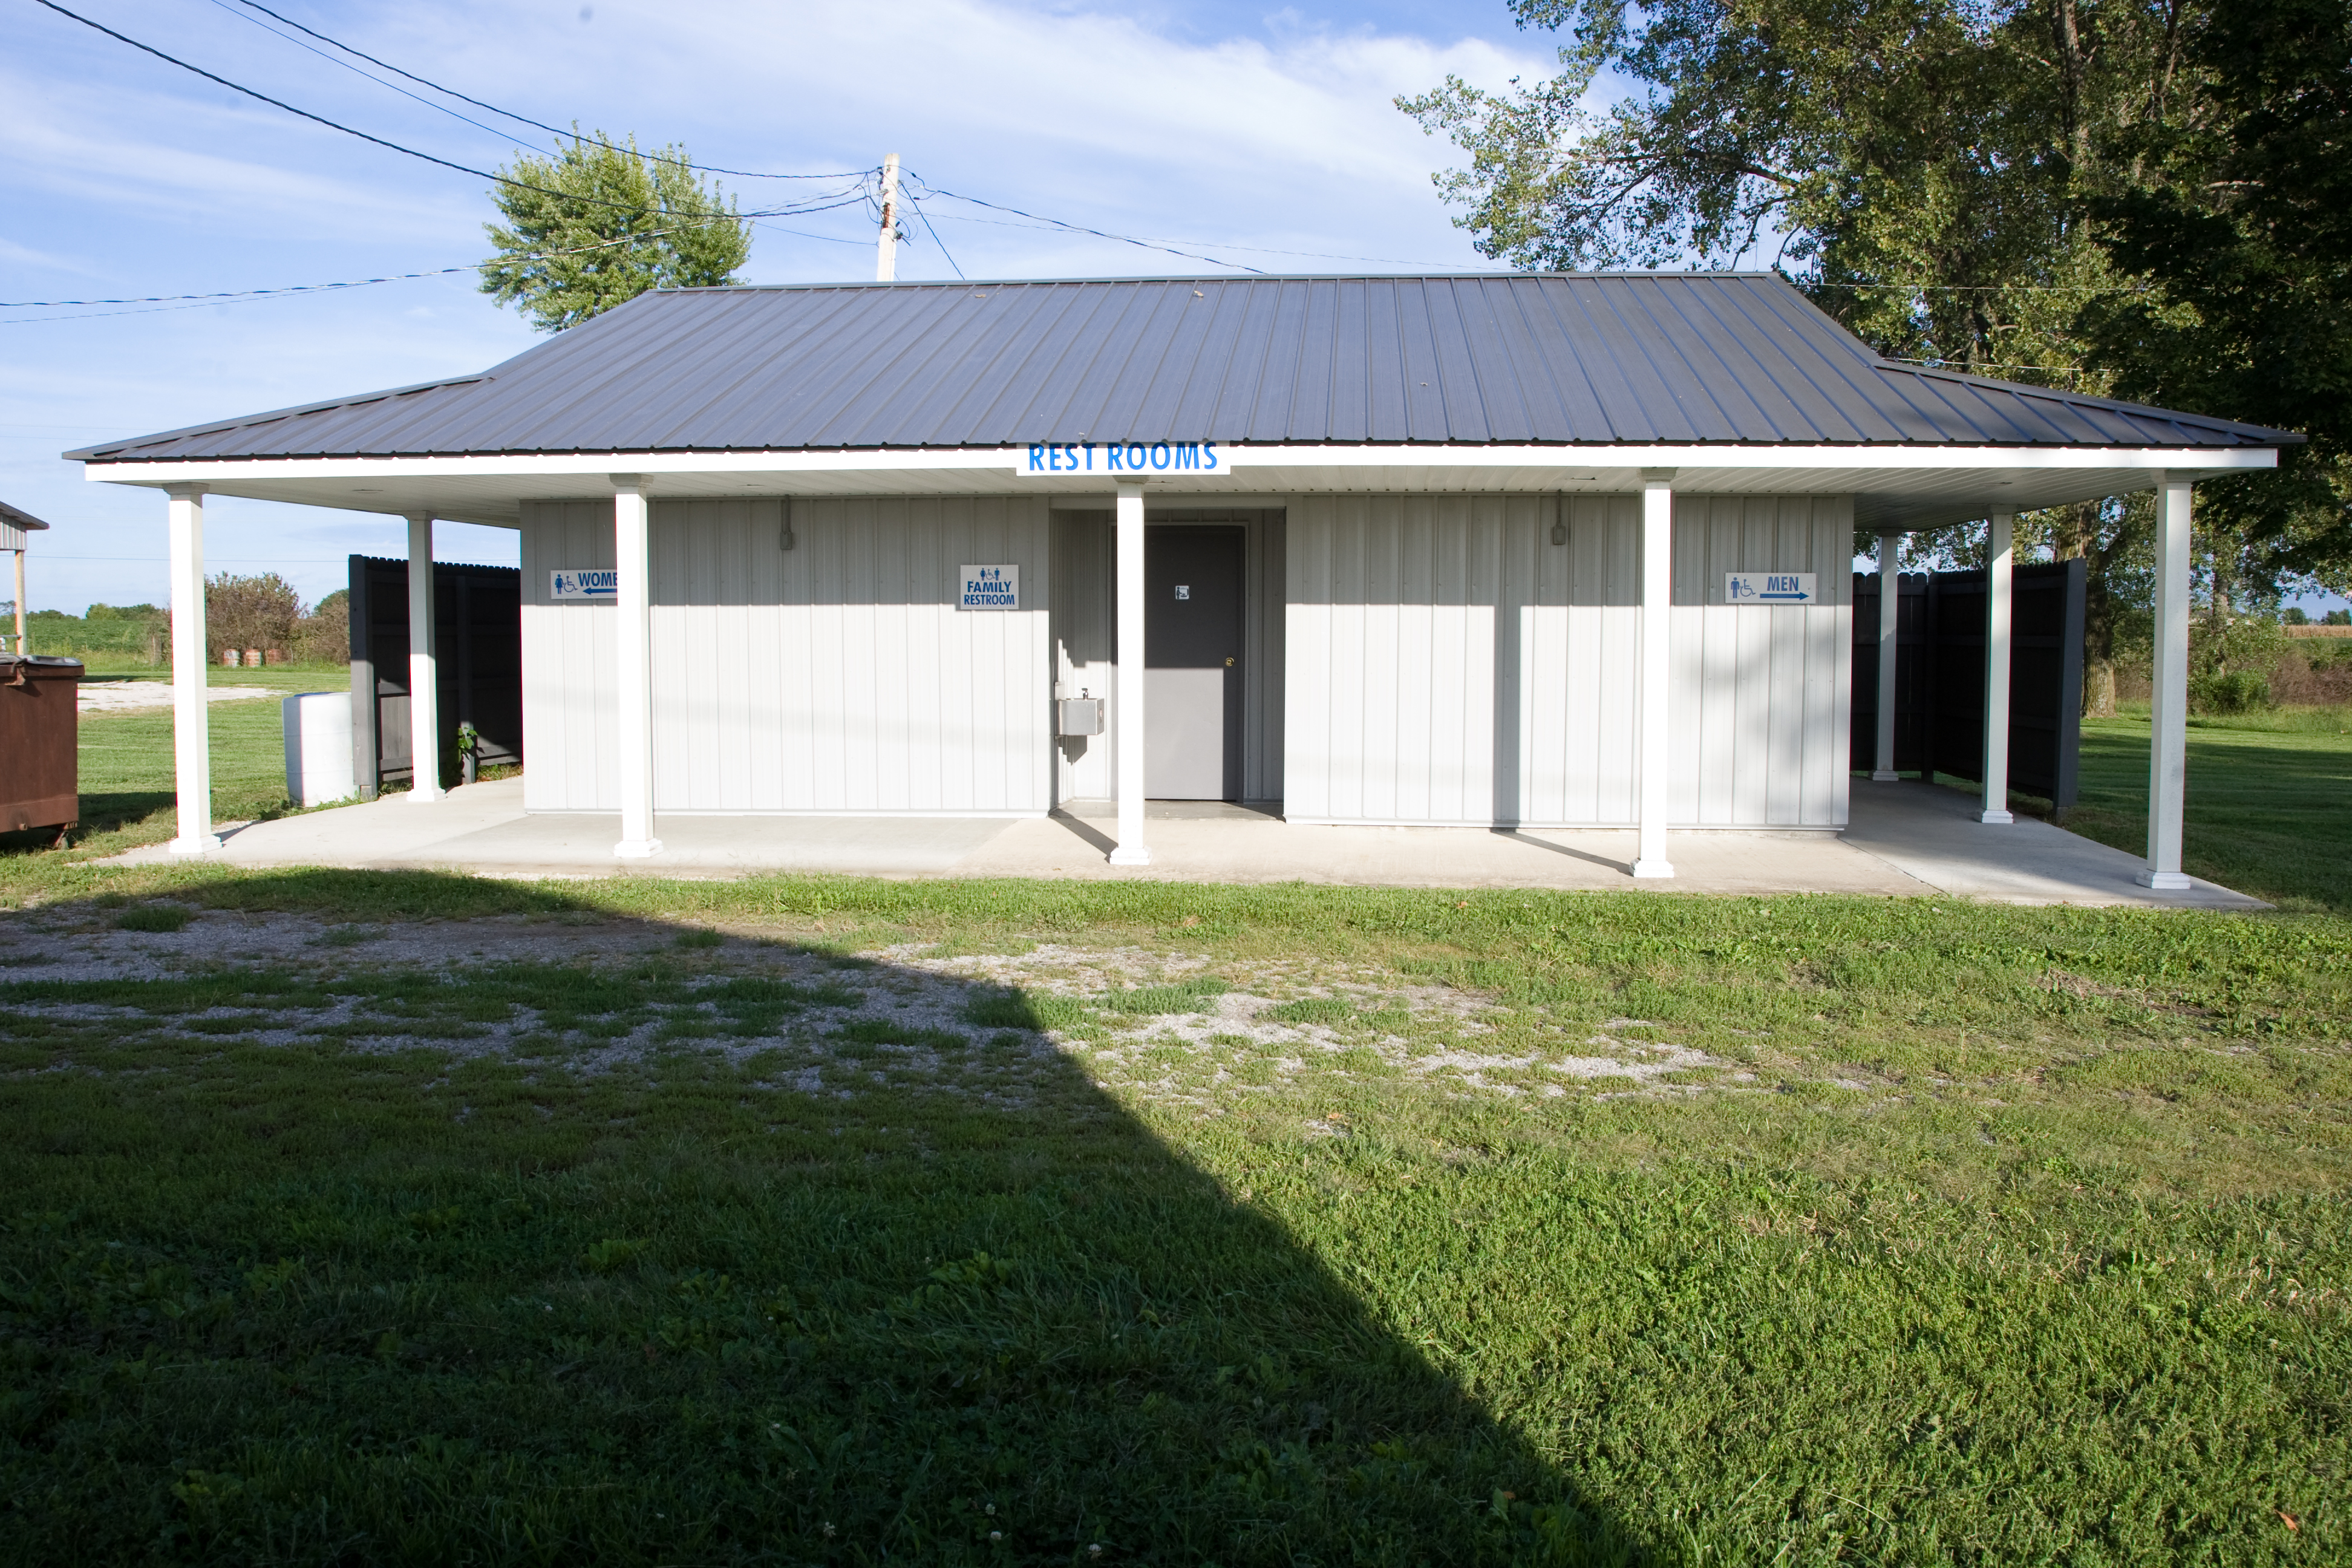 Saline Co Fairgrounds_0052